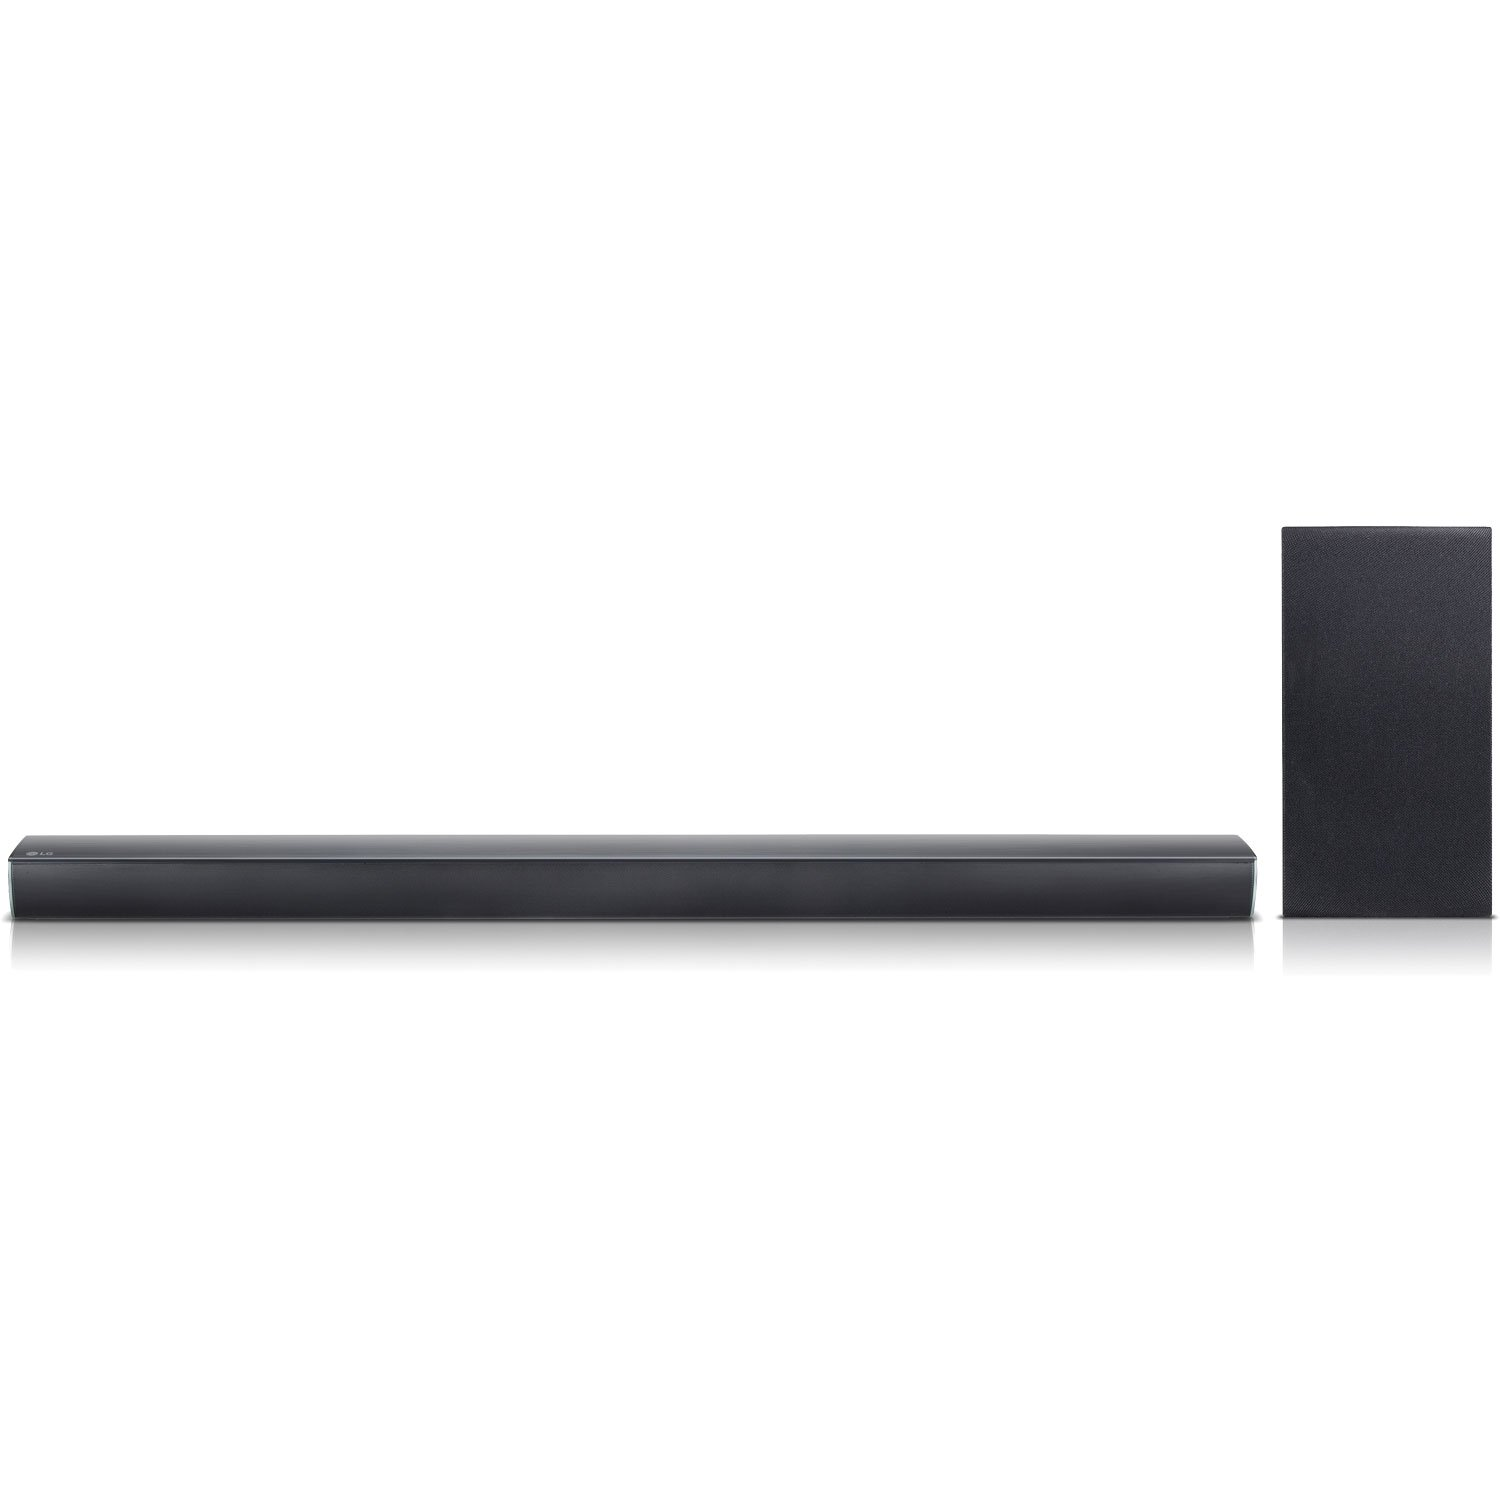 LG Electronics SJ5Y 2.1 Channel 320 Watt High Resolution Audio Sound Bar (2017 Model) by LG